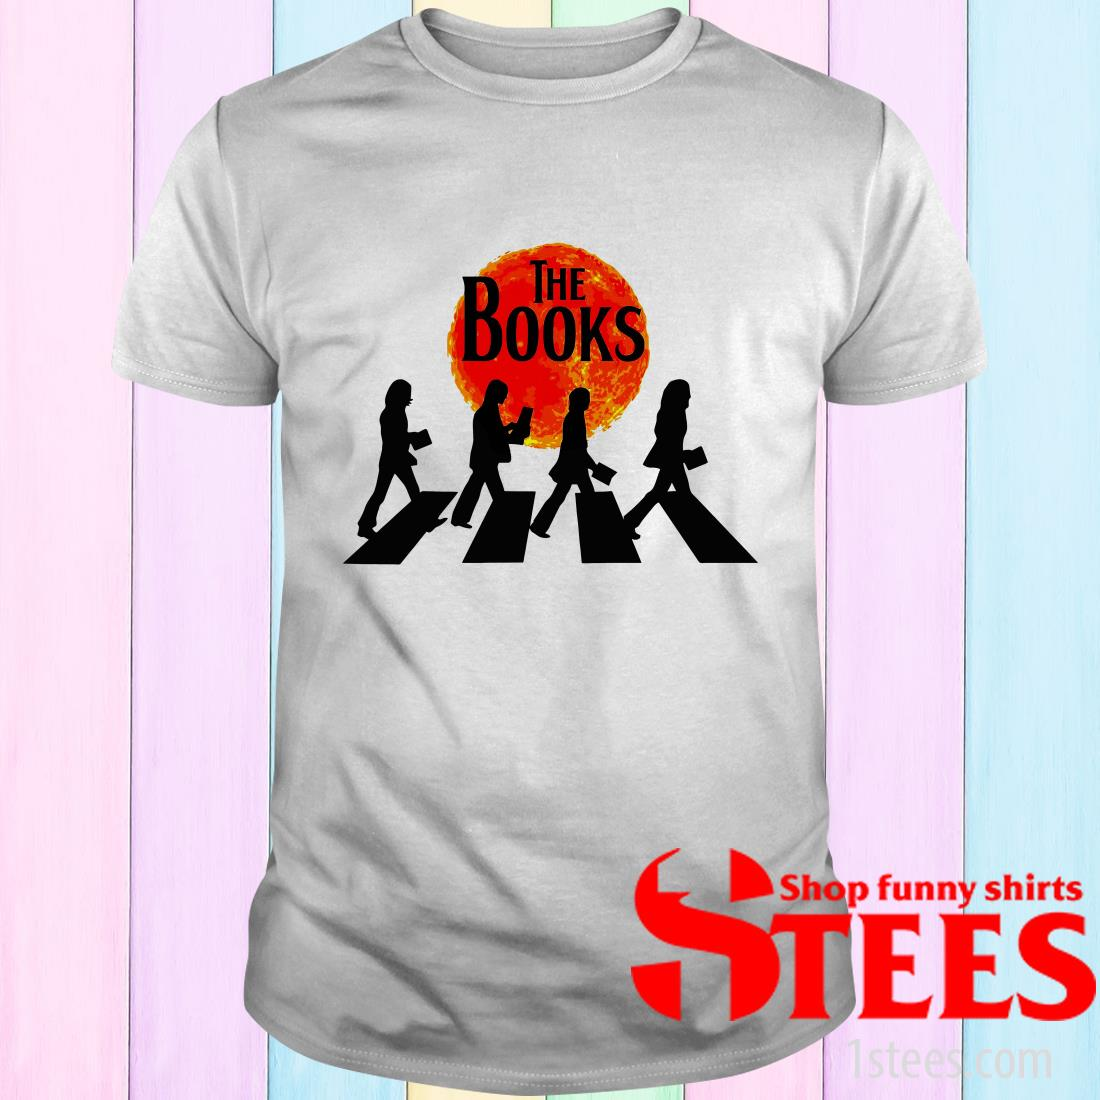 Abbey Road The Books T-Shirt